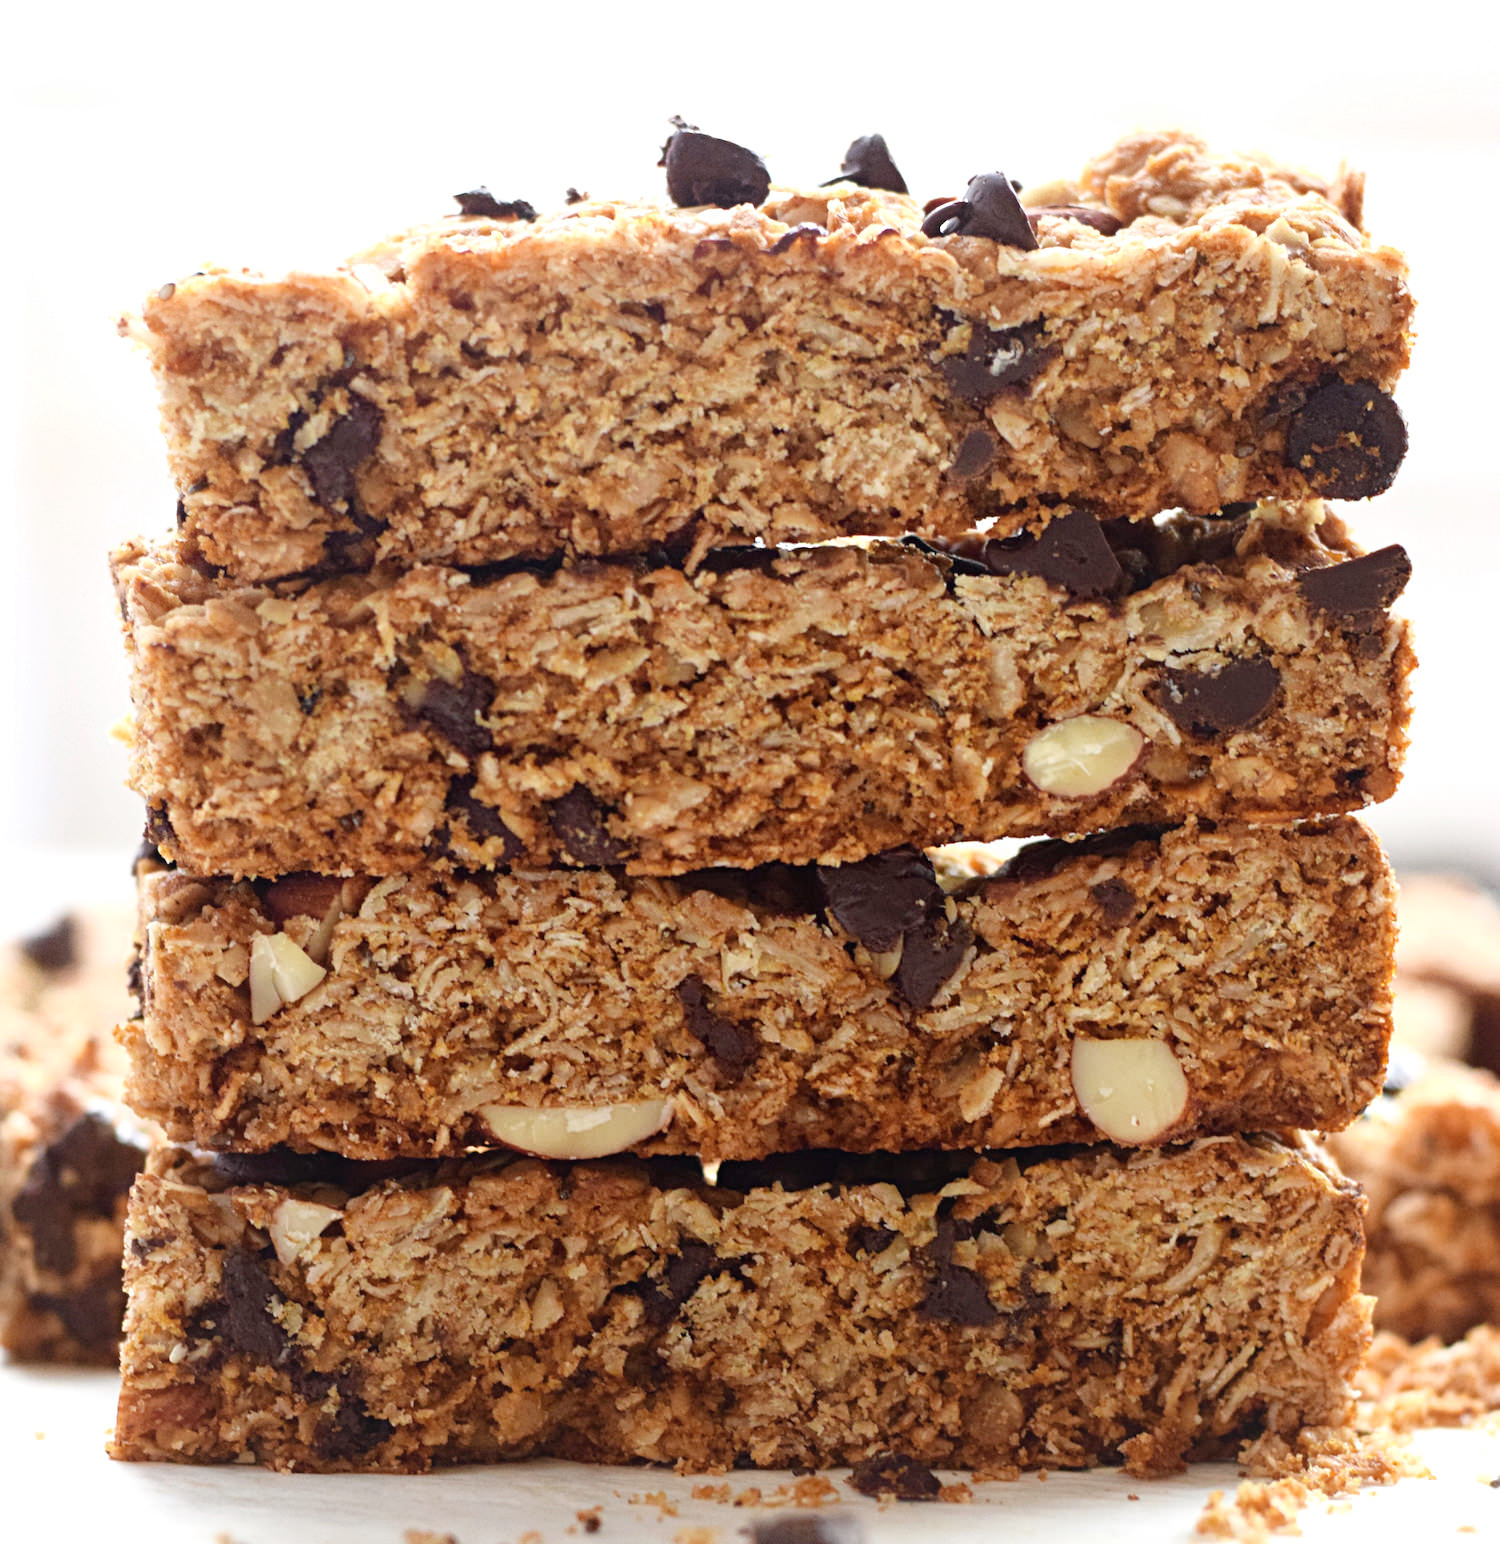 Soft Granola Bars – soft, chewy, easy, wholesome granola bars with chopped almonds and chocolate. My favorite granola bars recipe! | trufflesandtrends.com